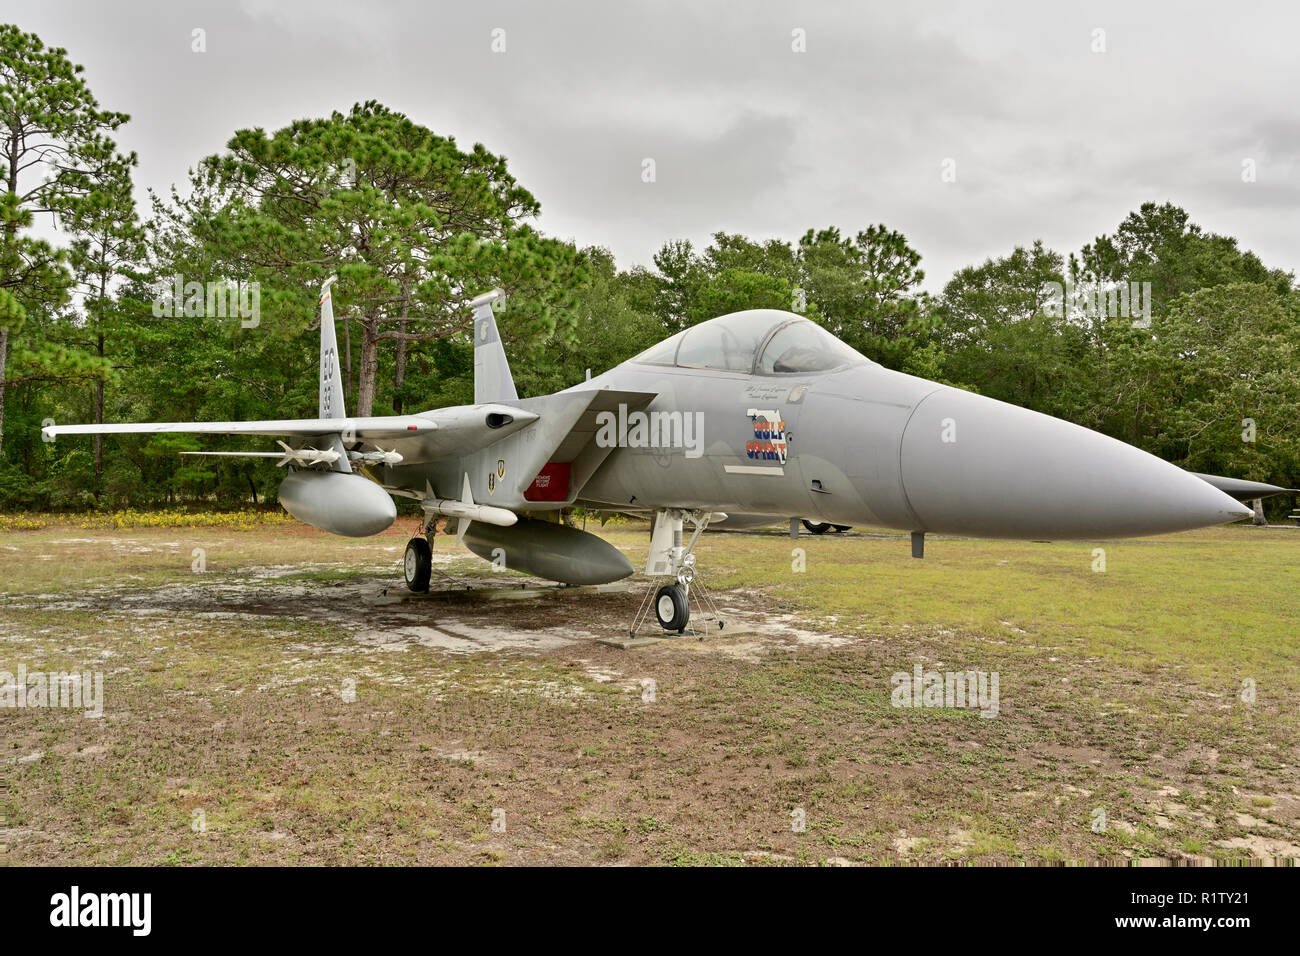 F-15 Eagle a fighter jet of the United States Air Force, on static display at the outdoor air museum on Eglin Air Force Base, Florida USA. - Stock Image